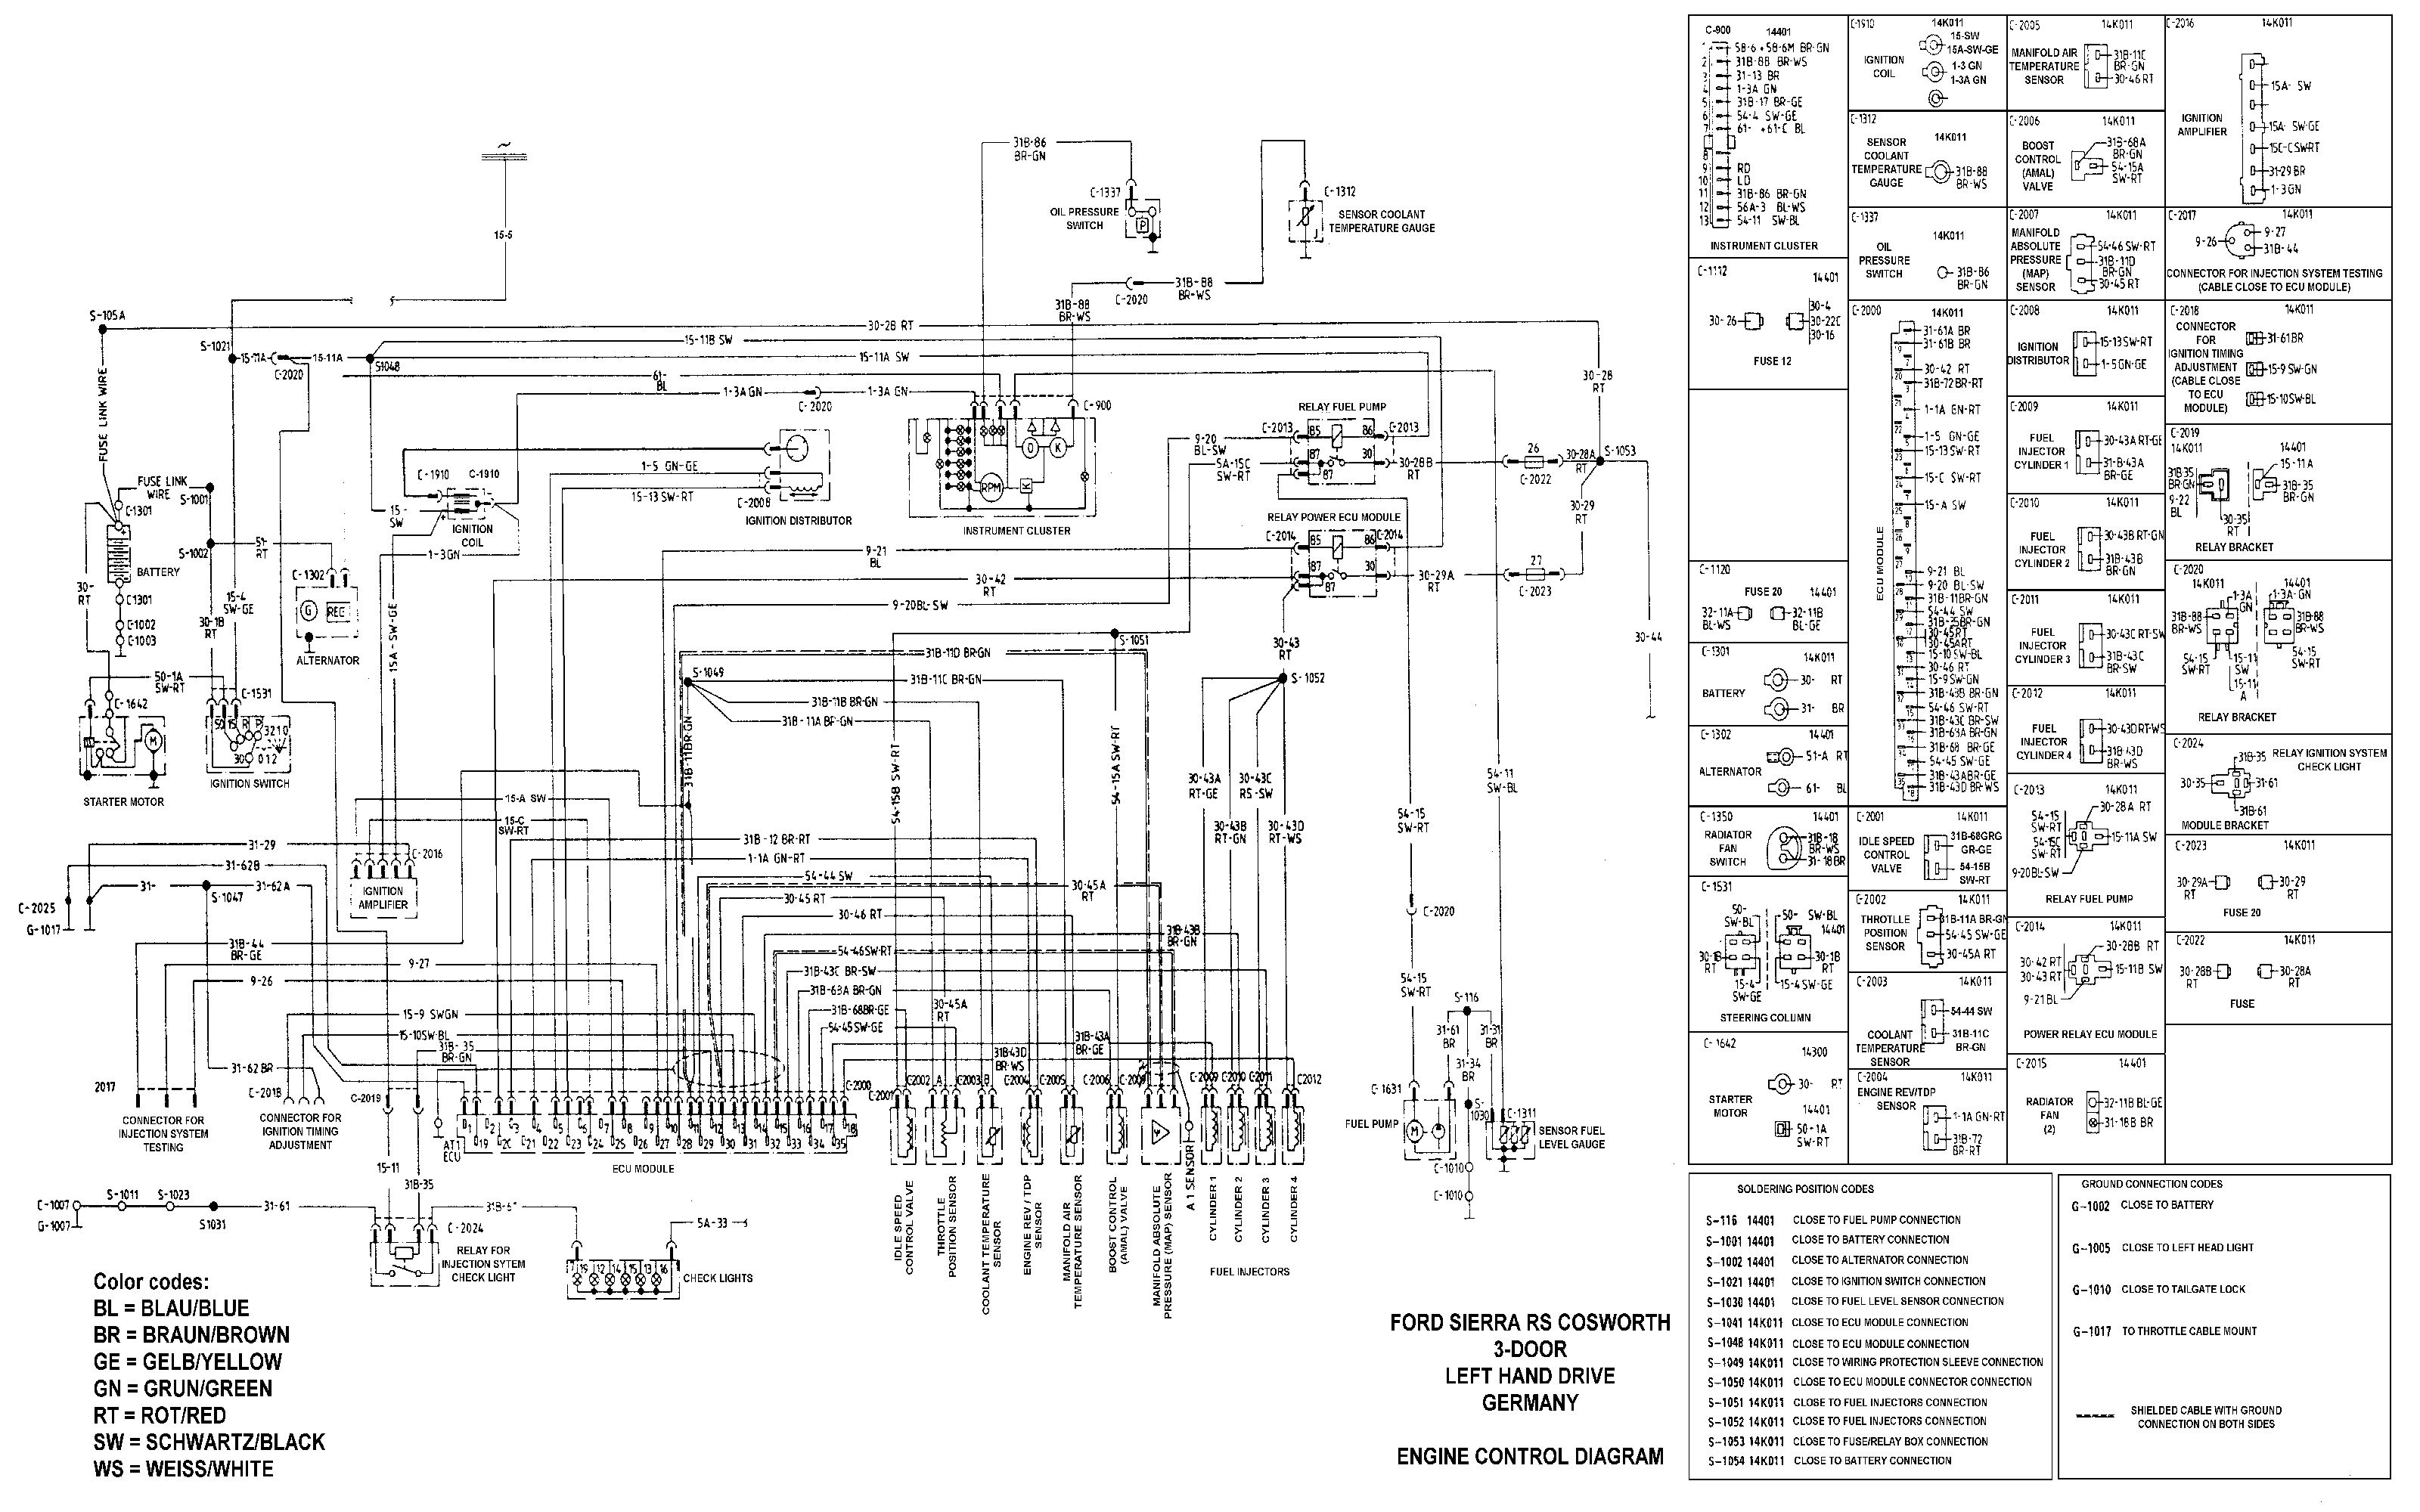 Ford Mondeo Engine Diagram 2000 ford Focus O2 Sensor Wiring Diagram and ford  Focus Mk2 Wiring